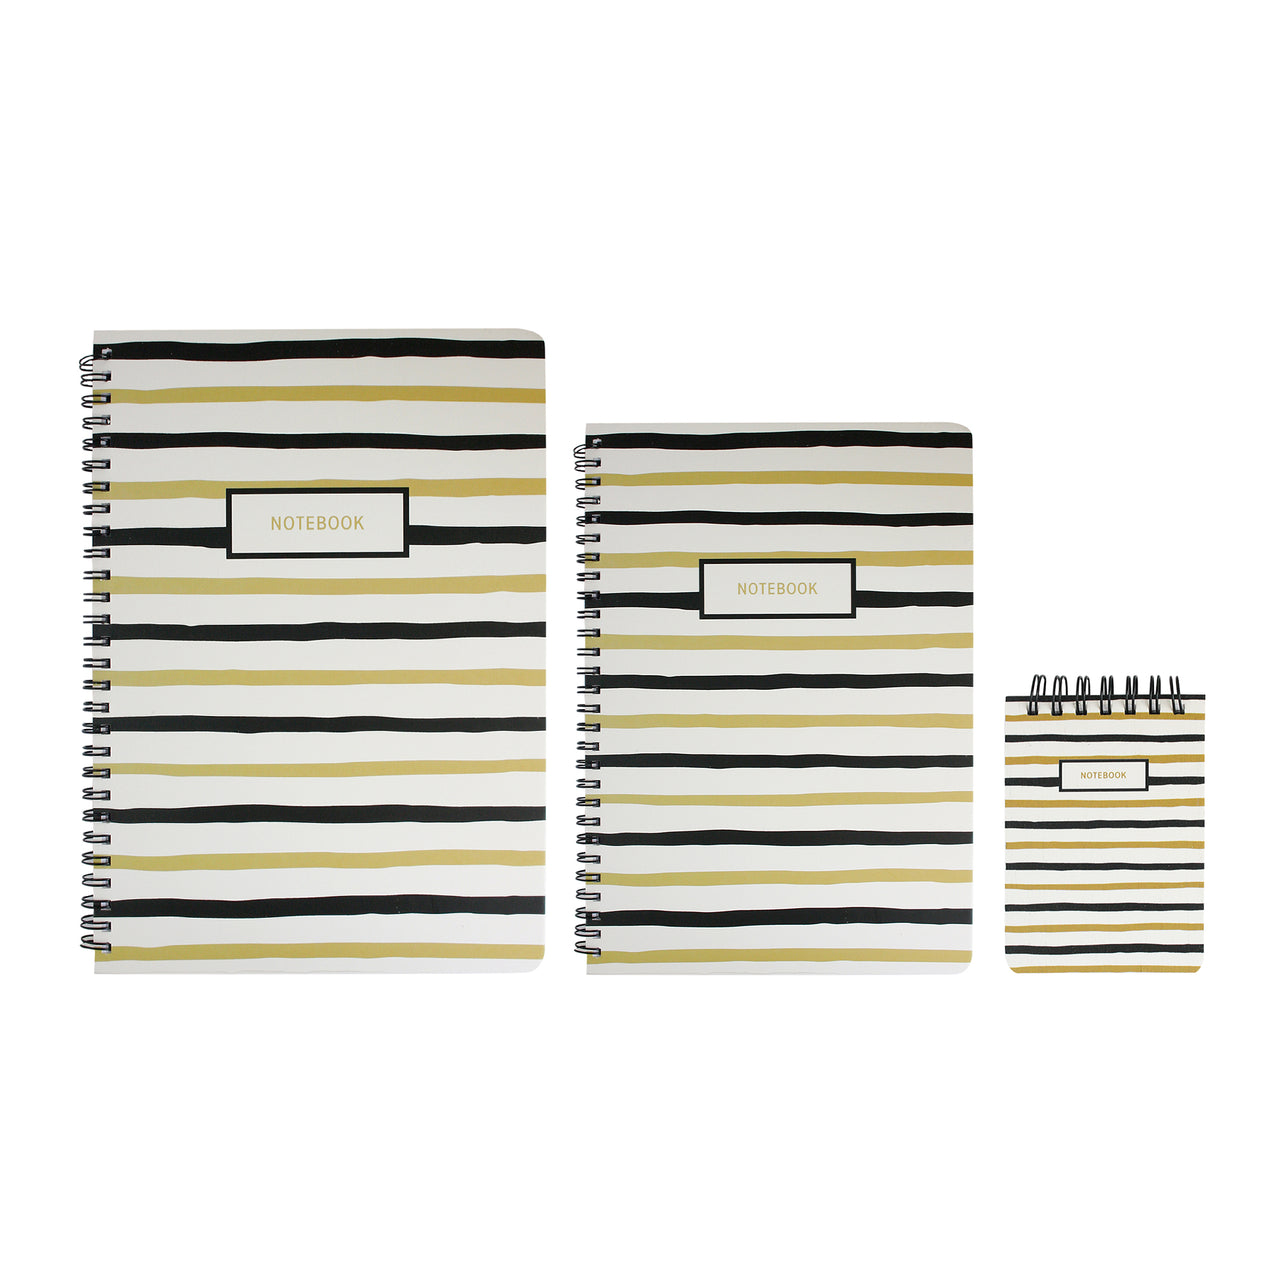 B5 , A5 , A7 Black & Gold Doodle Notebook - Set of 3